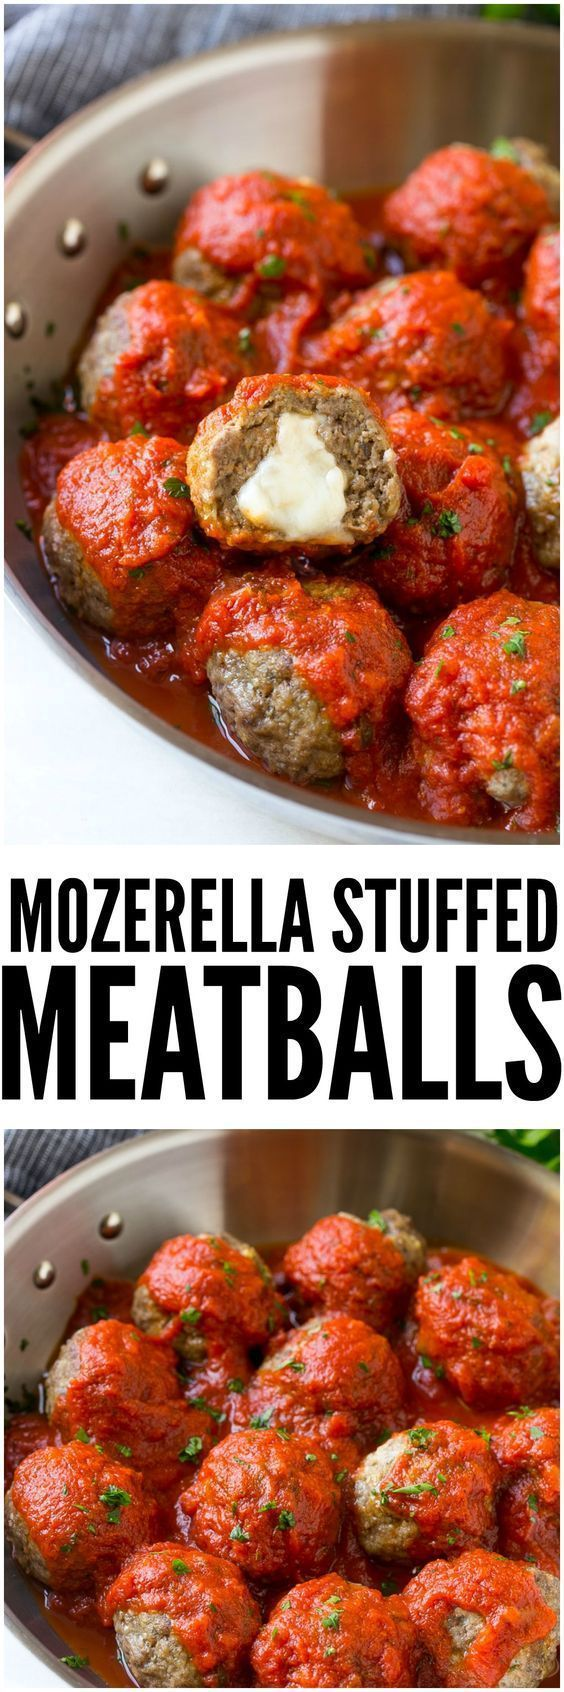 These mozzarella stuffed meatballs are a fun twist on the classic recipe – serve these meatballs as a party appetizer or over a big plate of spaghetti for a hearty meal! Serves: 6 servings